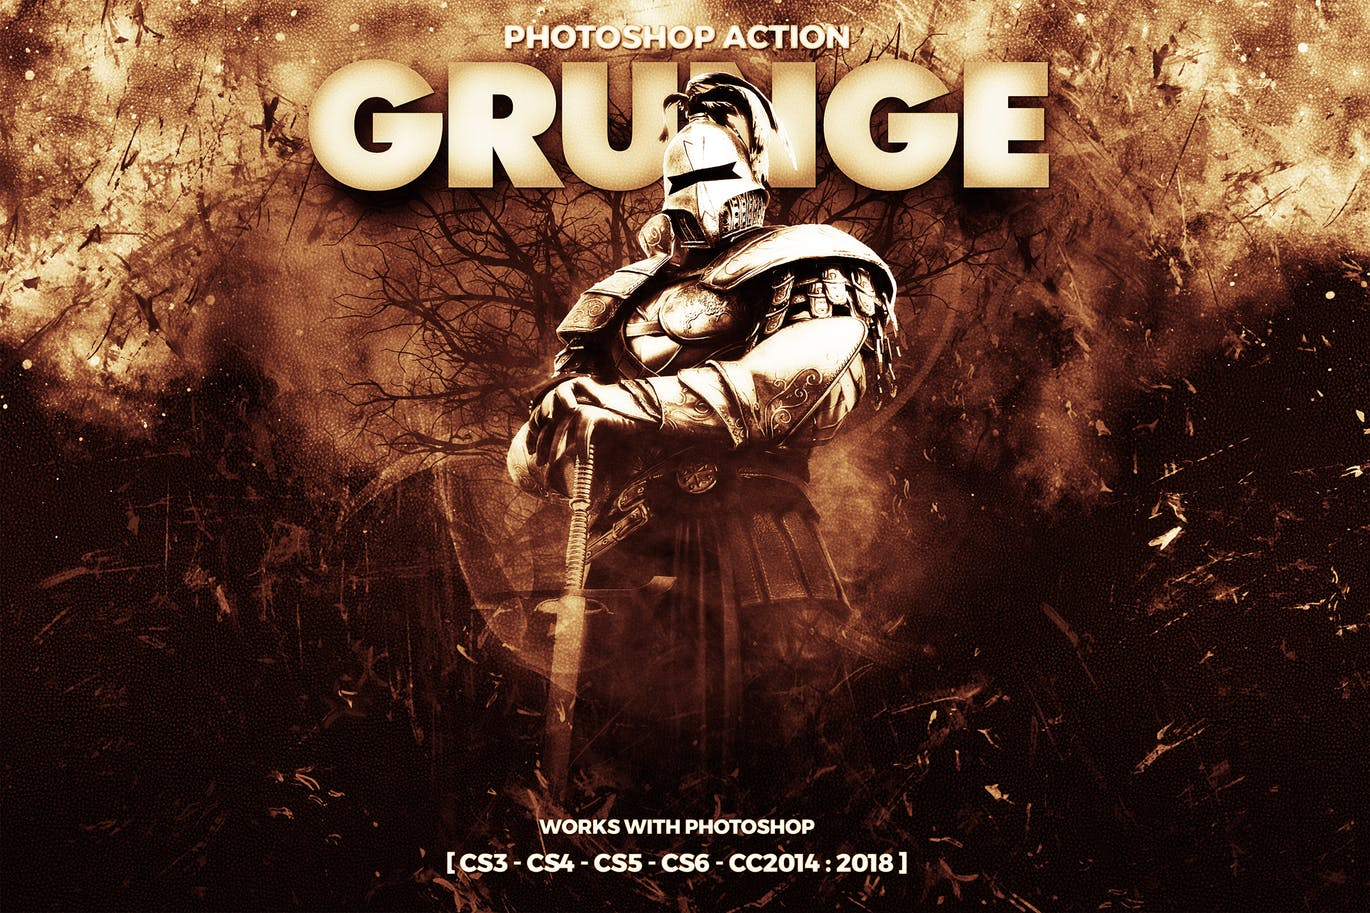 Grunge Photoshop Action| Free Download